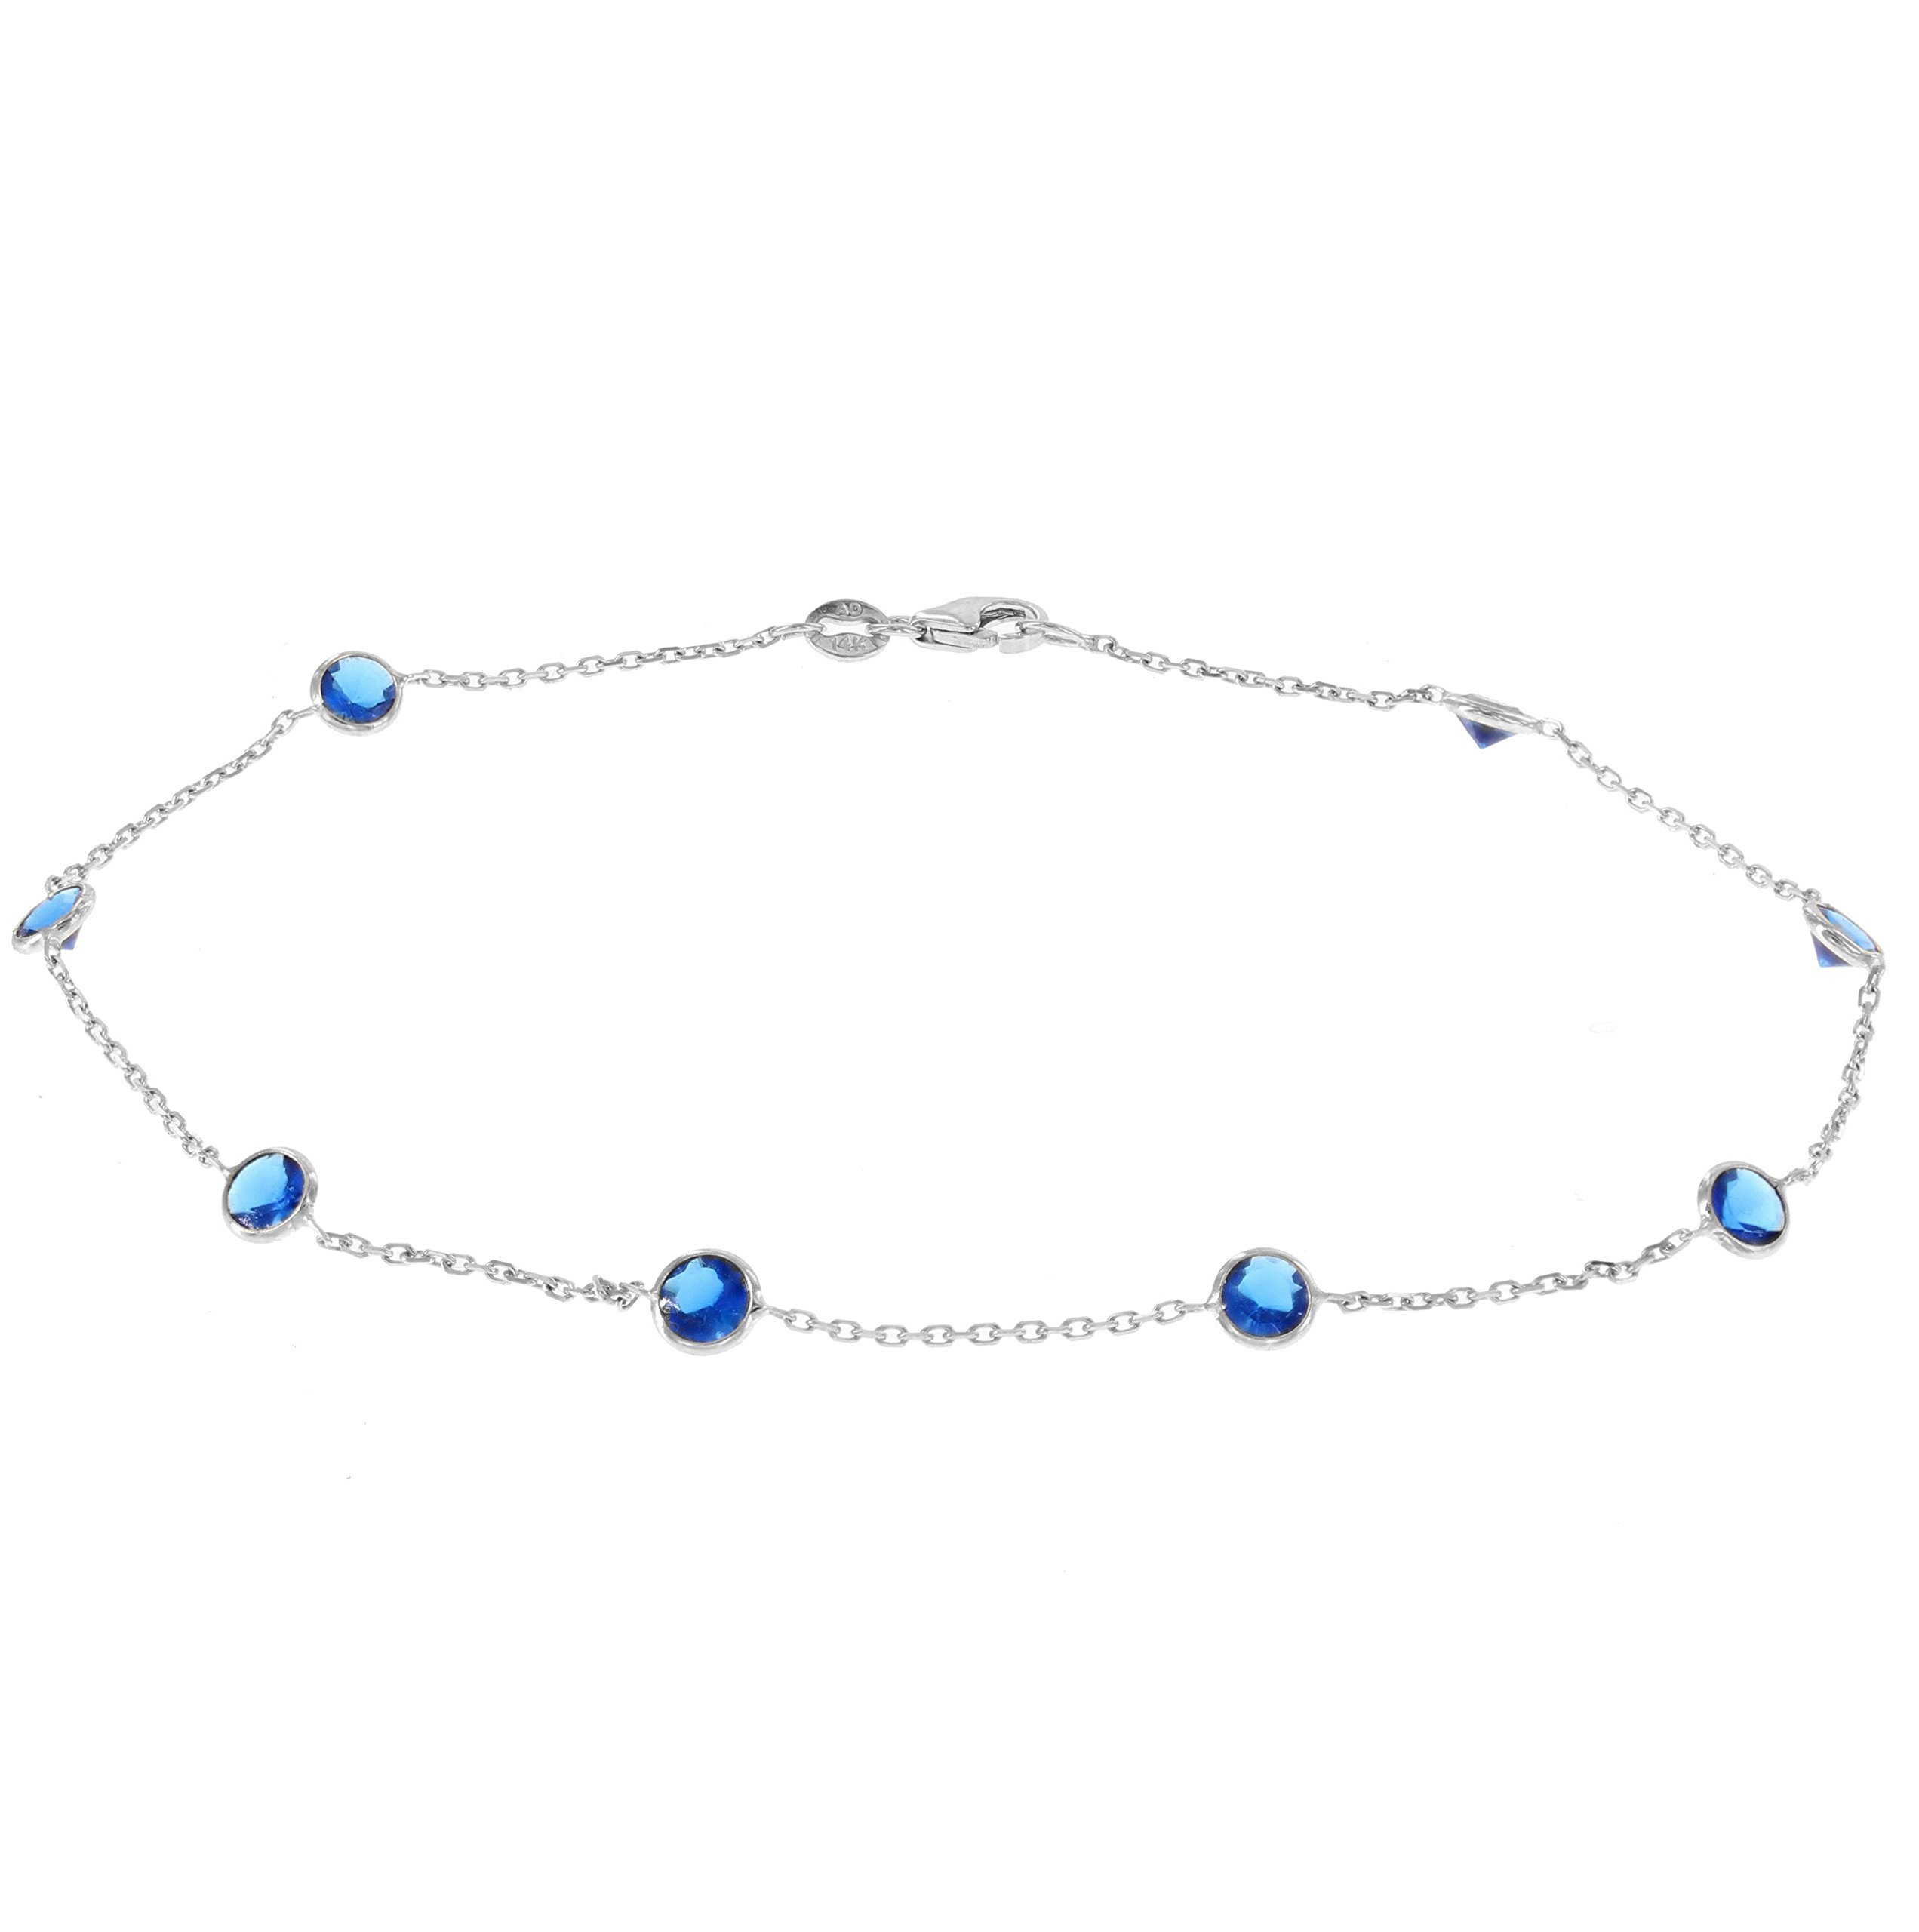 14k White Gold Ankle Bracelet With Blue Cubic Zirconia Stations (9 - 11 inches)